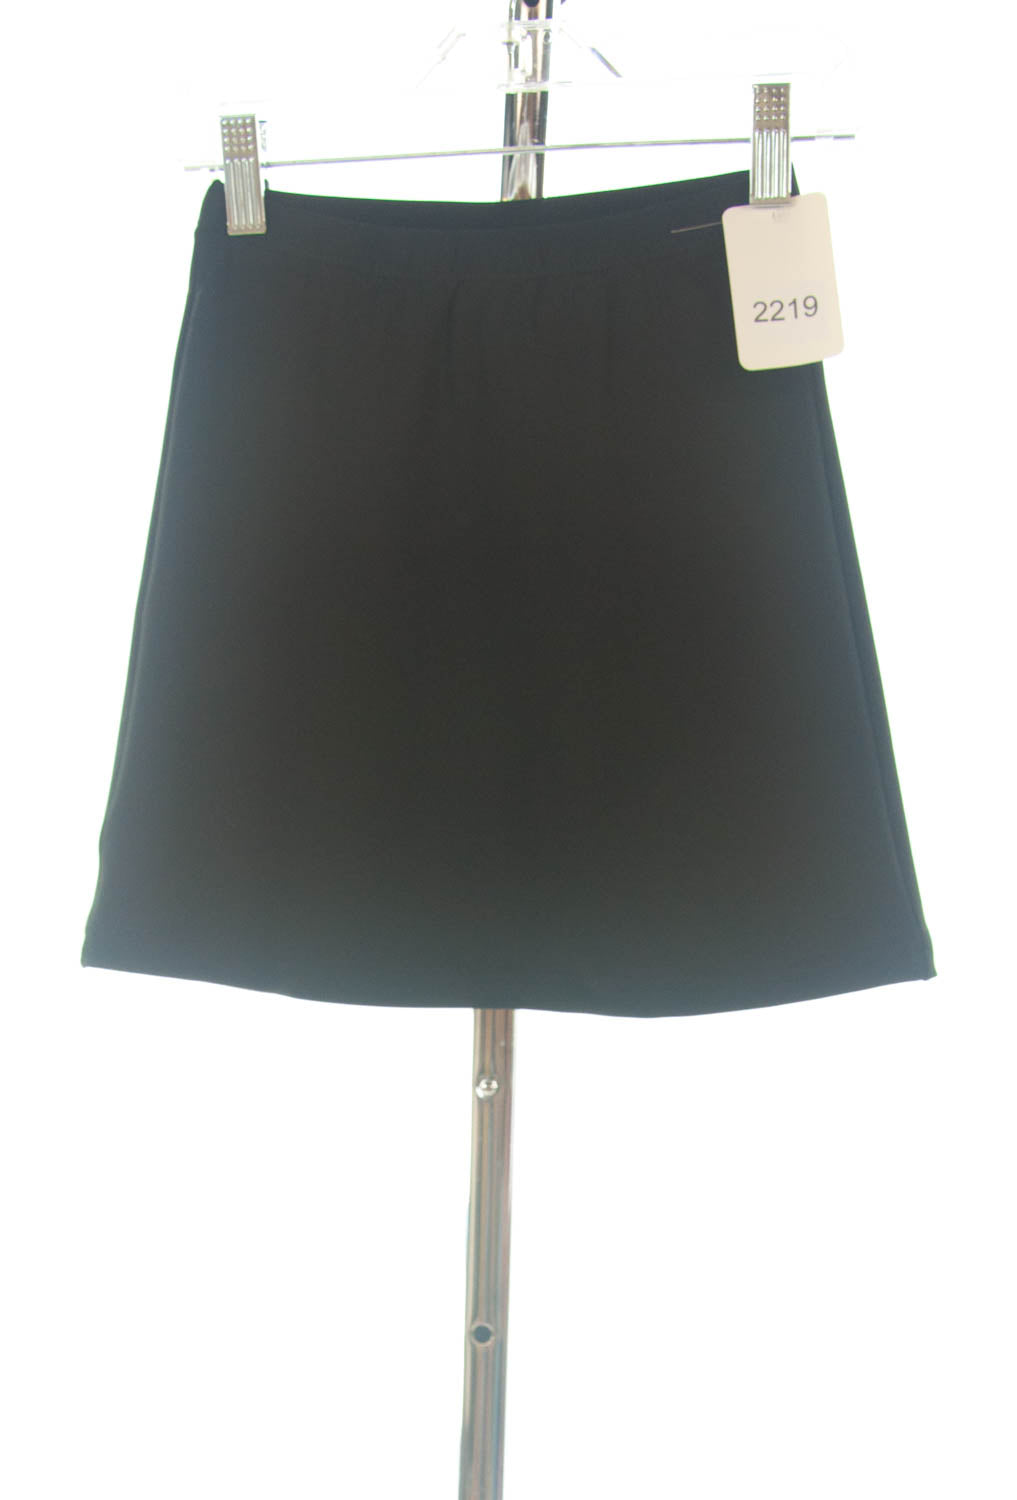 #2219 Sale Rack Item / Athletic Exercise Skirt / Girls 6 / Black